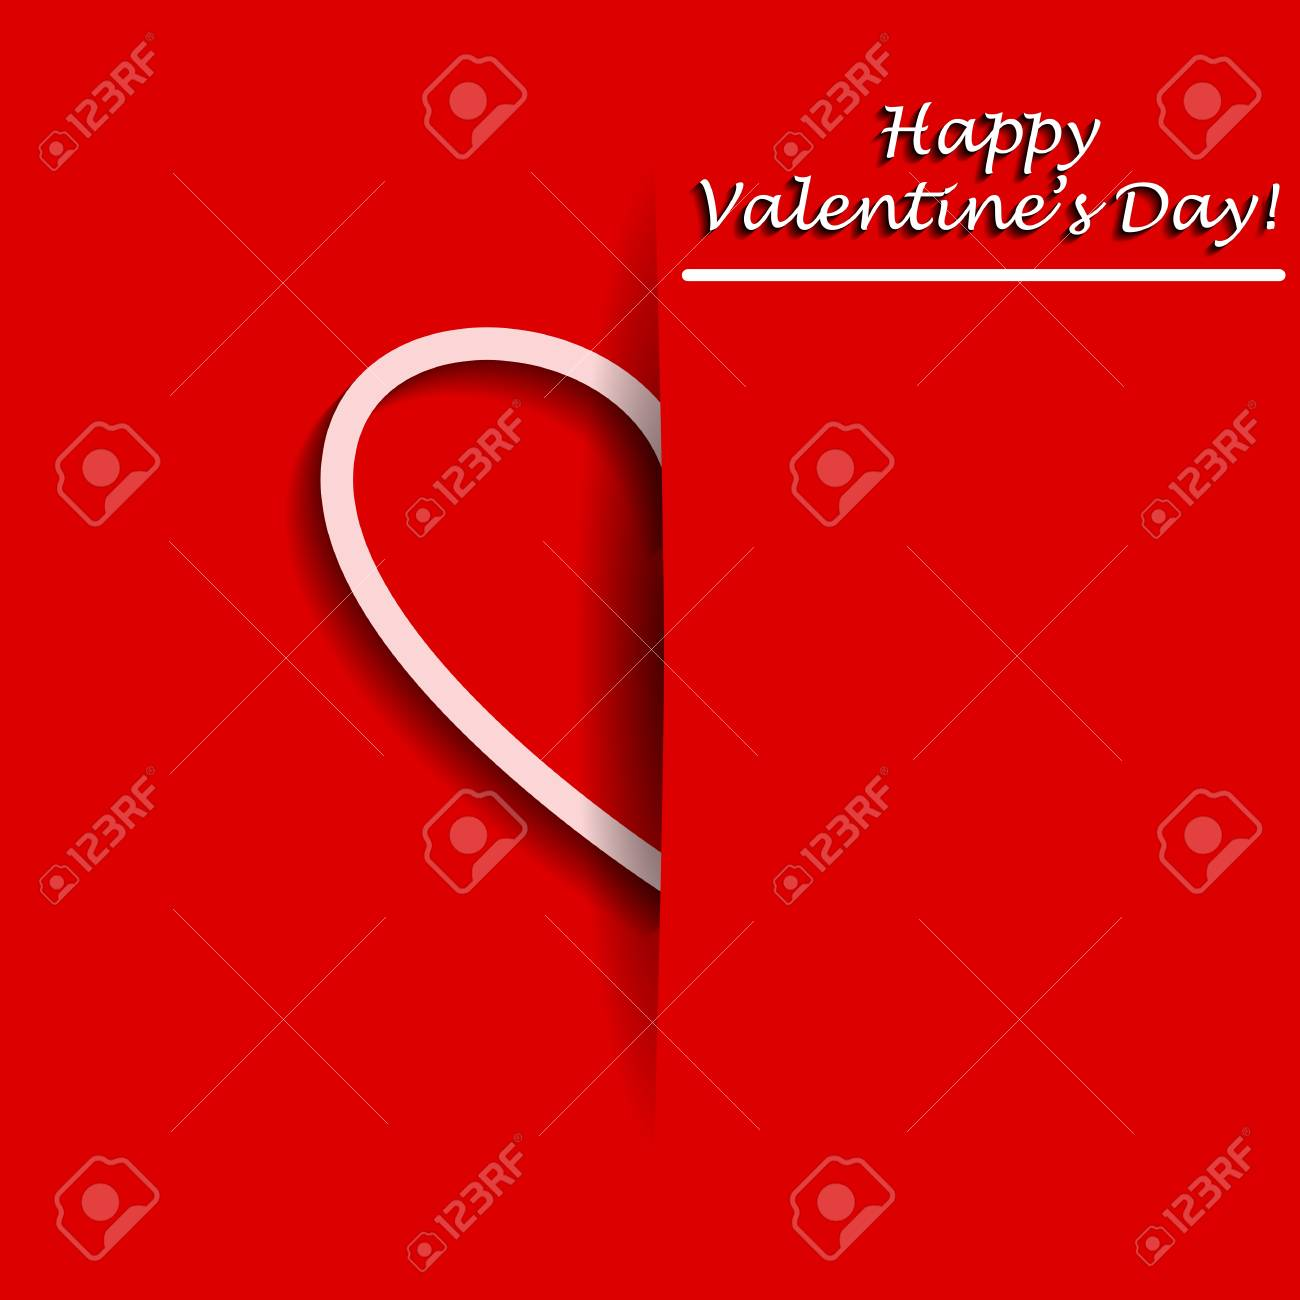 Valentines day greeting card with half of heart in cover vector valentines day greeting card with half of heart in cover vector illustration stylish design kristyandbryce Image collections